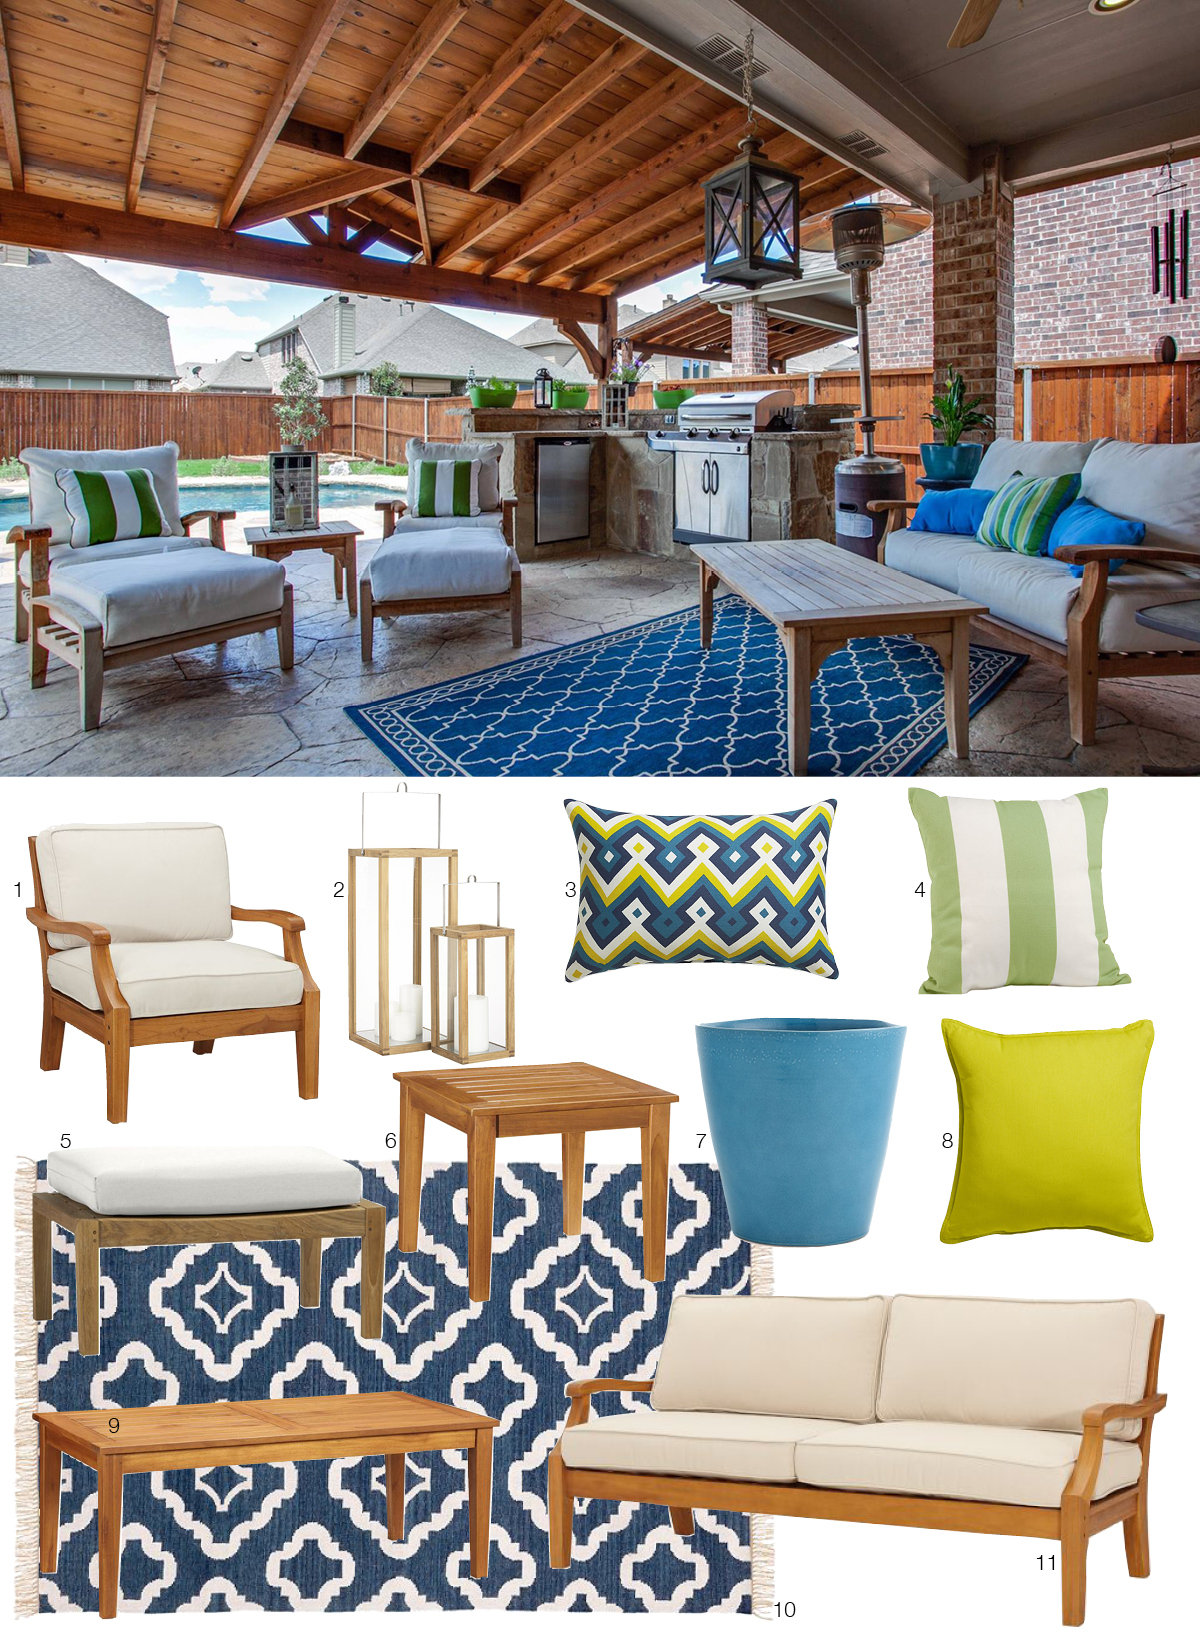 Room Re-do: Colorful Outdoor Oasis